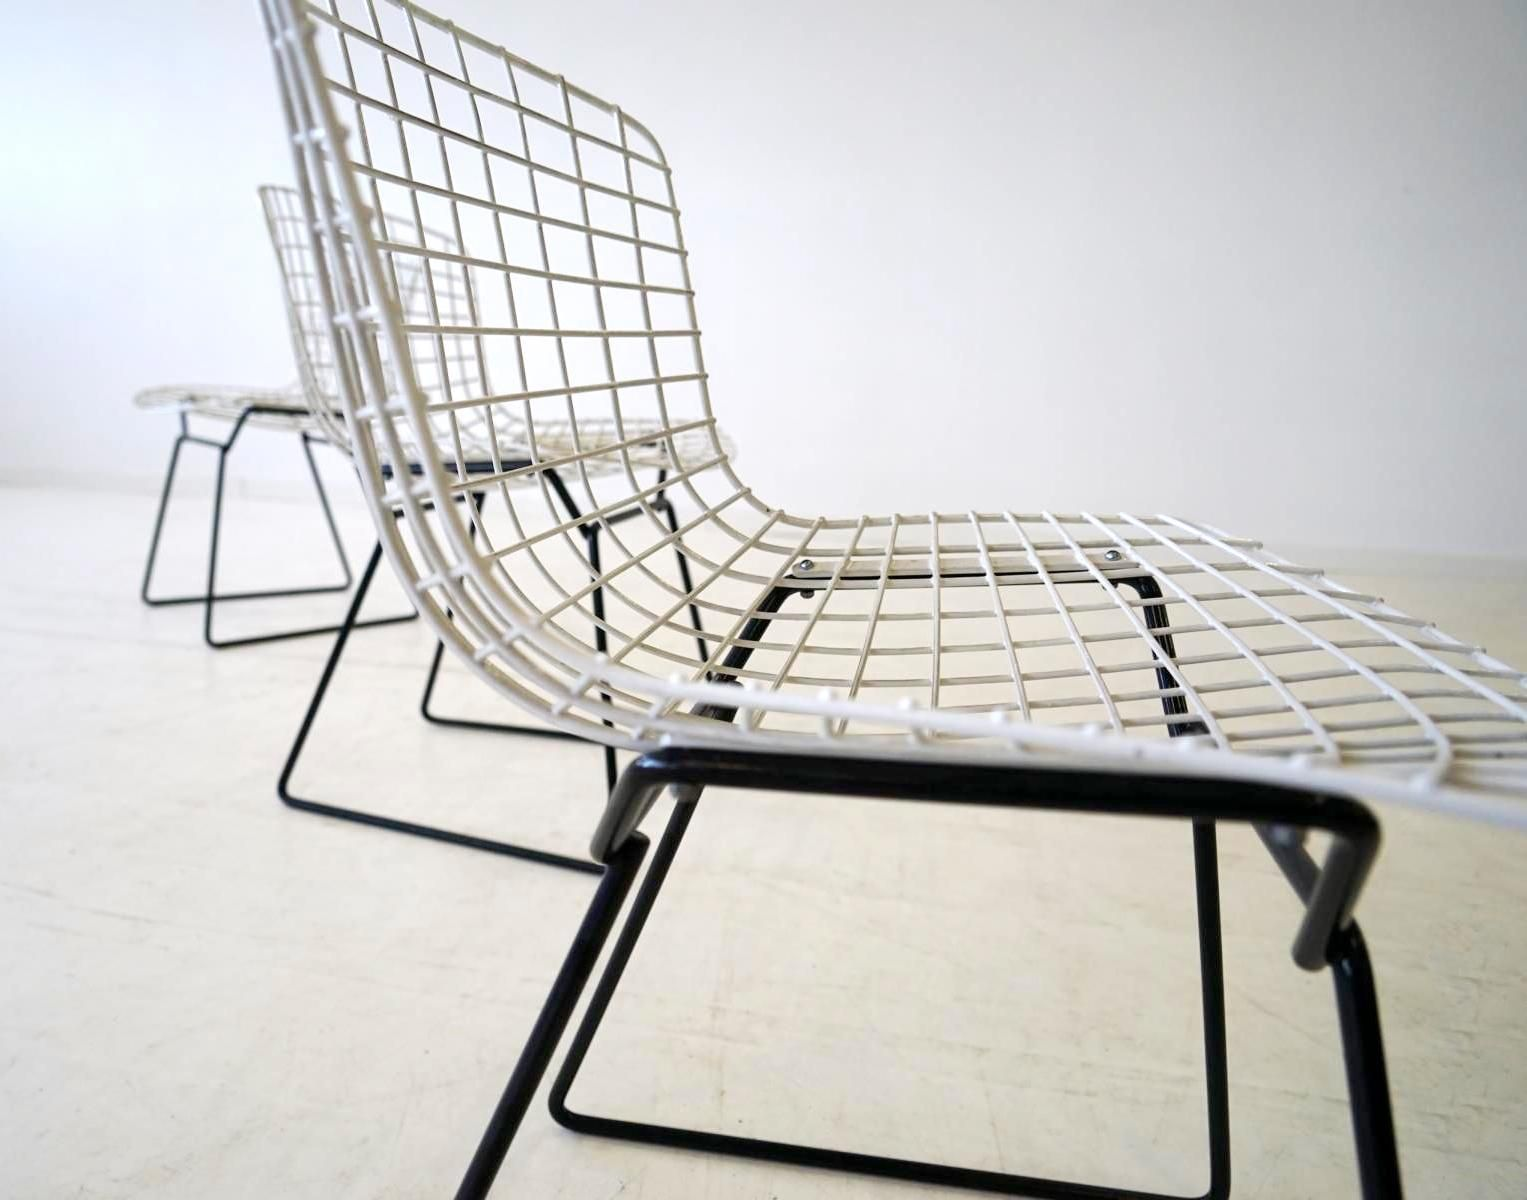 Diamond wire lounge chairs by harry bertoia for knoll inc 1950s set of 4 for sale at pamono - Knoll inc chairs ...